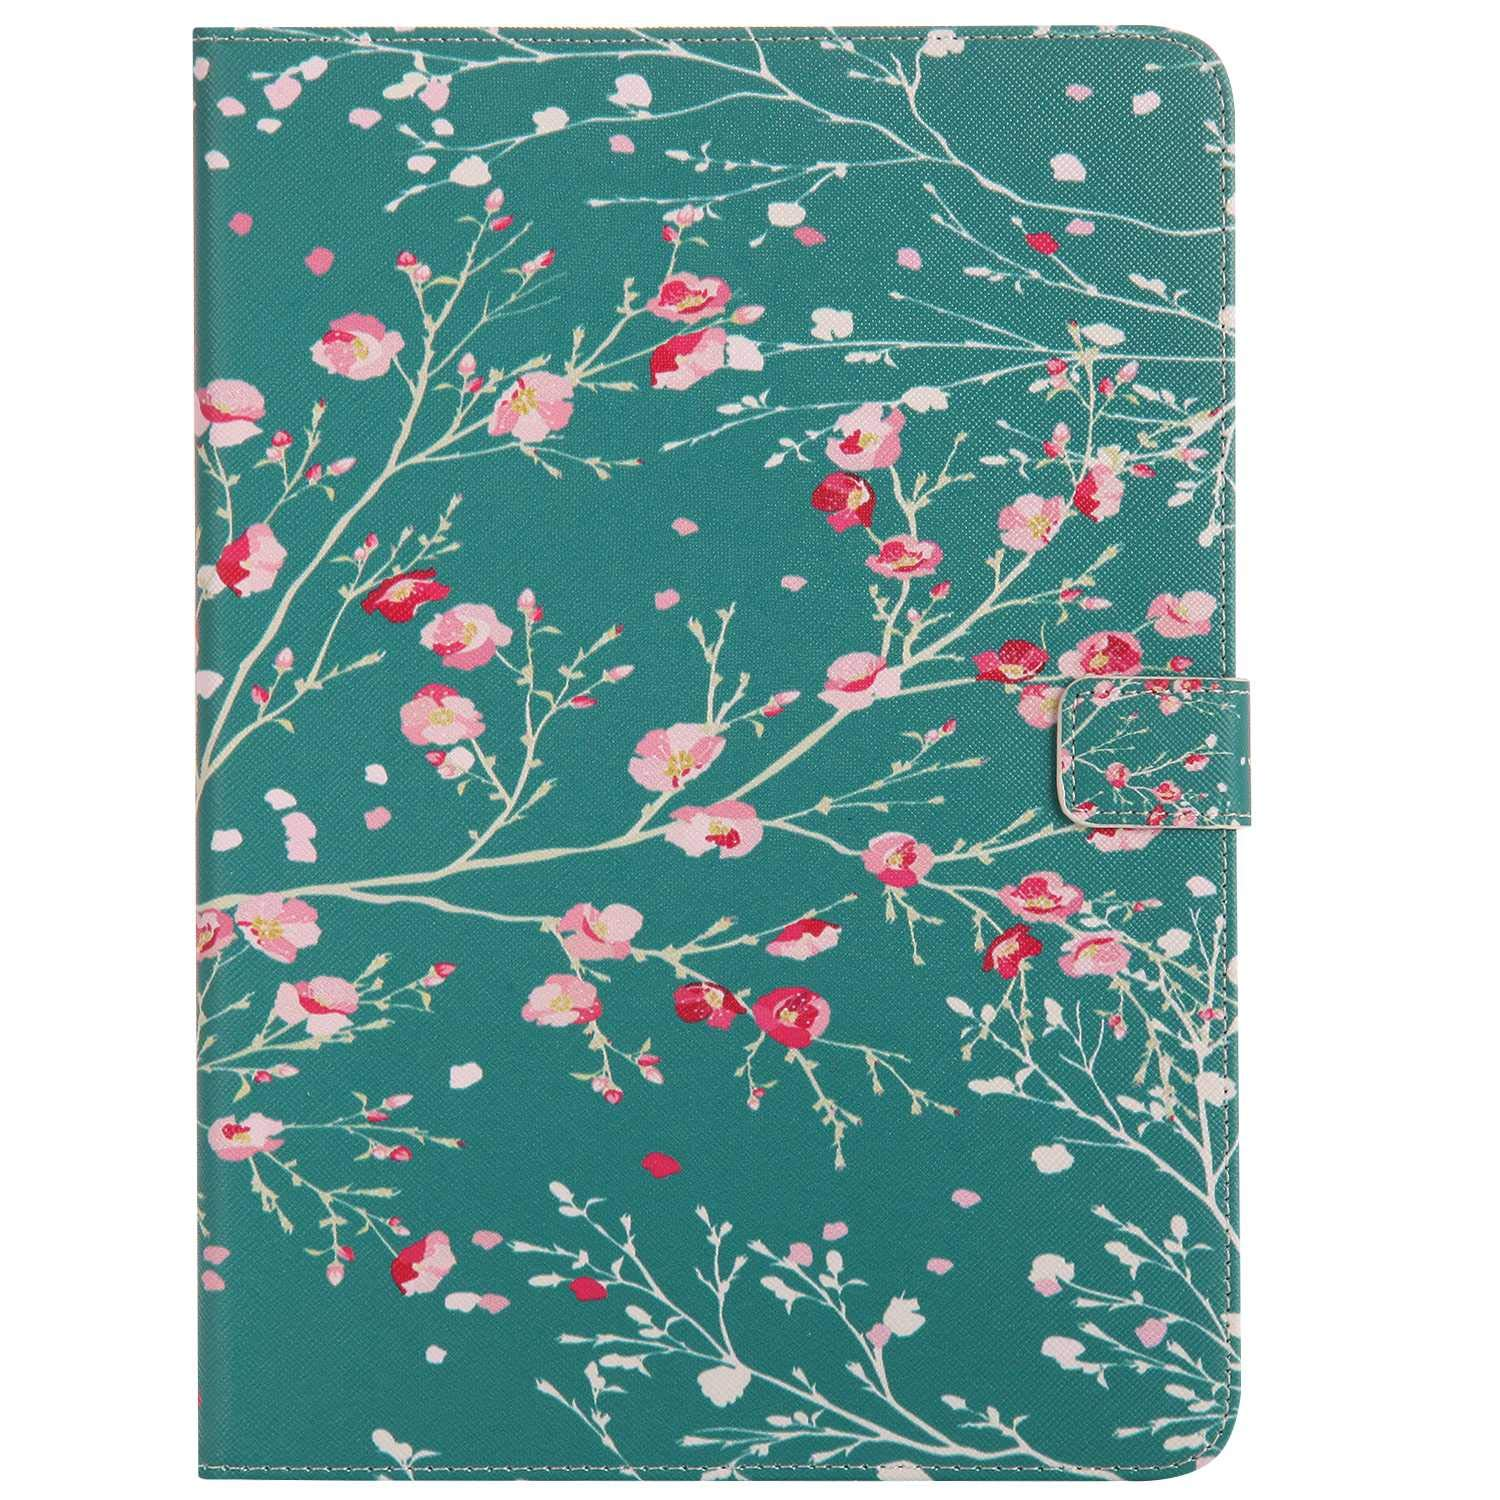 Bear Village iPad 2017 / iPad 2018 (9.7 Inch) Case, Anti Scratch Shell with Adjust Stand, Colorful Design Leather Stand Case for Apple iPad 2017 / iPad 2018 (9.7 Inch), Flower by Bear Village